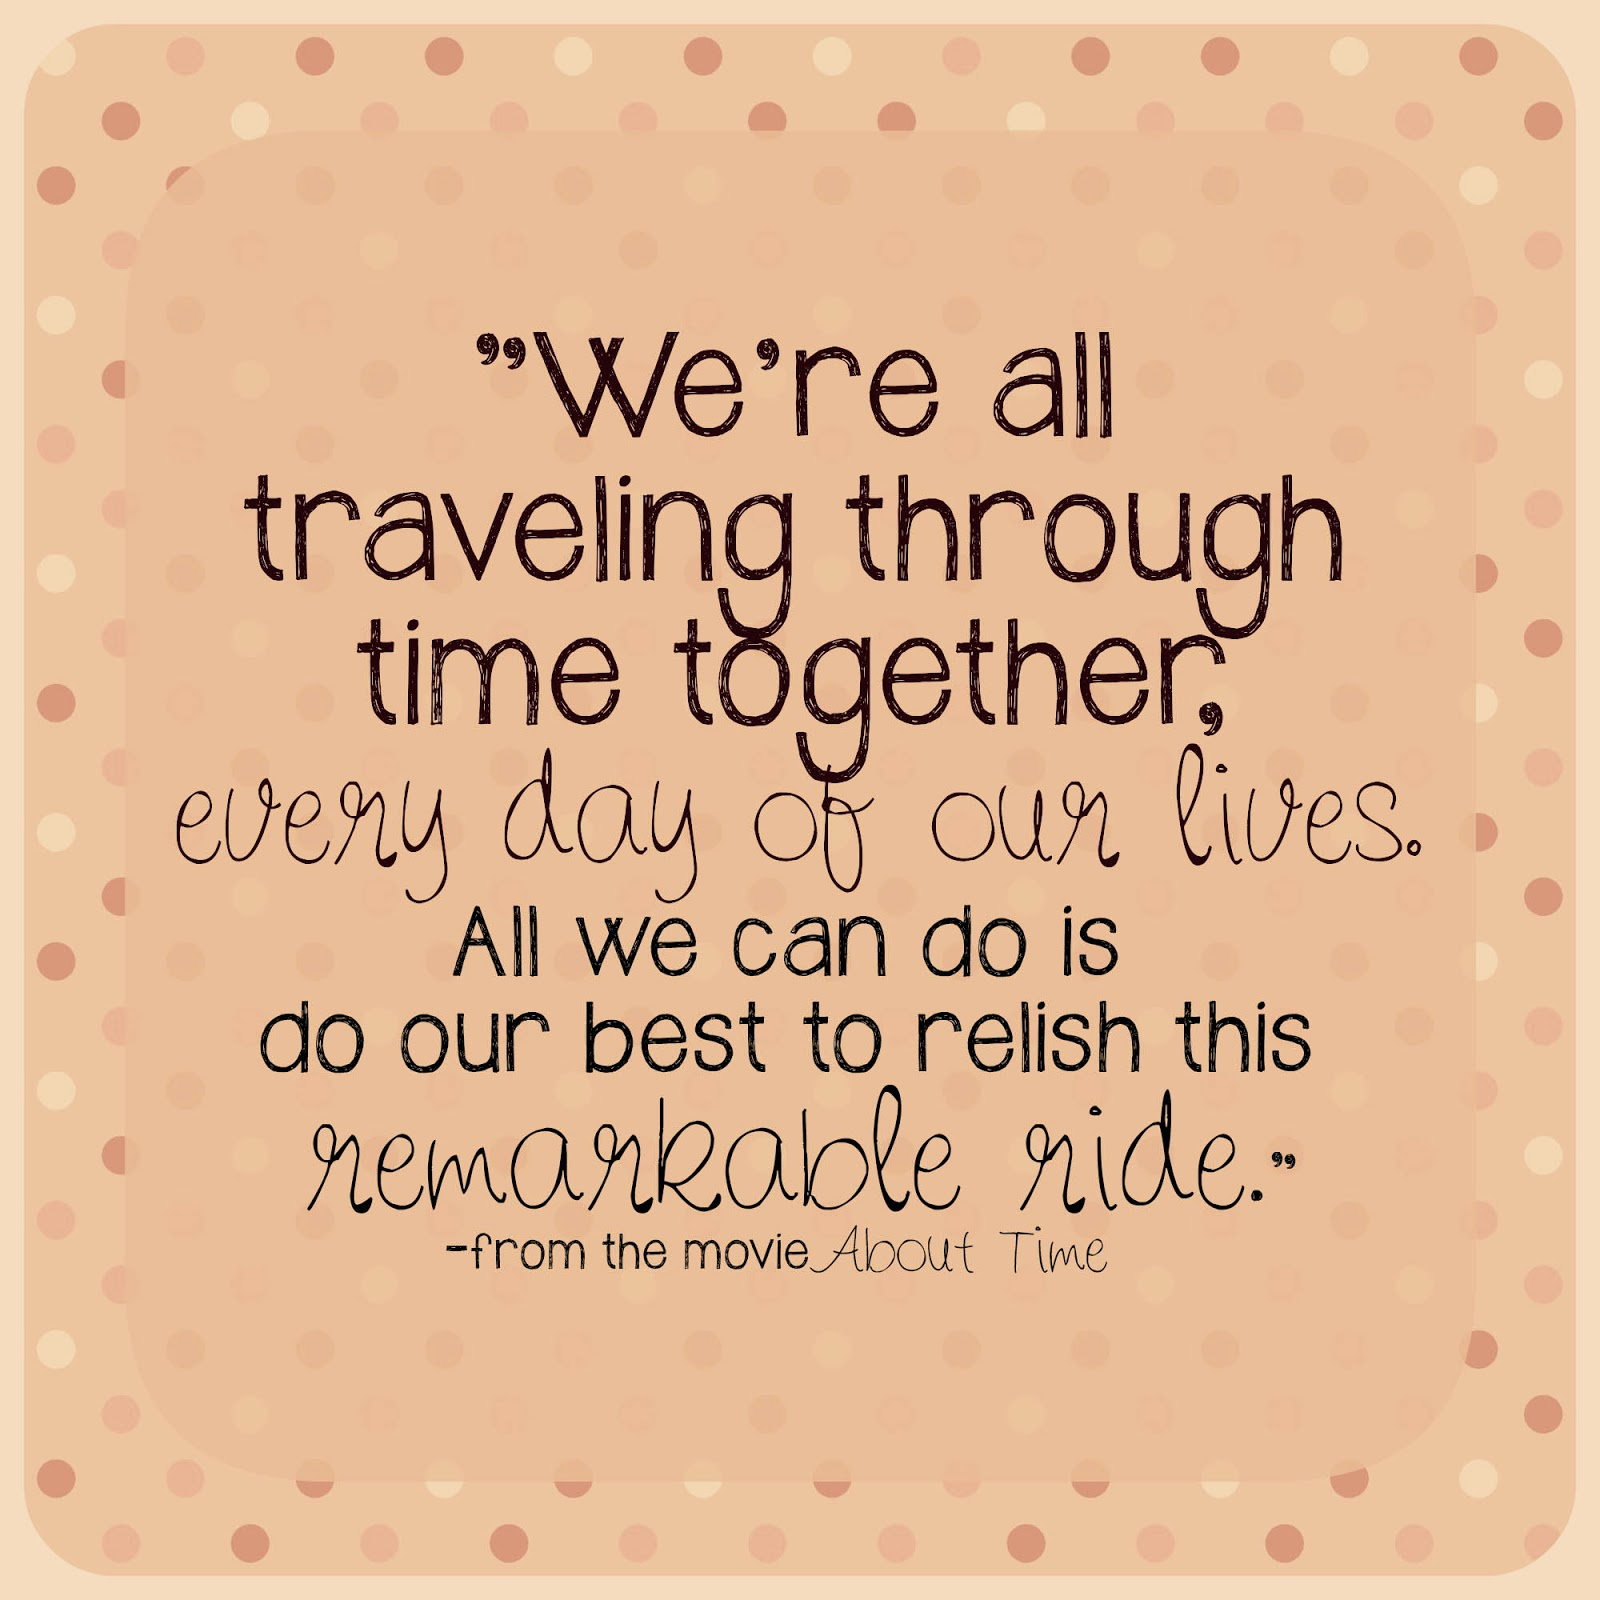 Forum on this topic: Reinventing Date Night, reinventing-date-night/